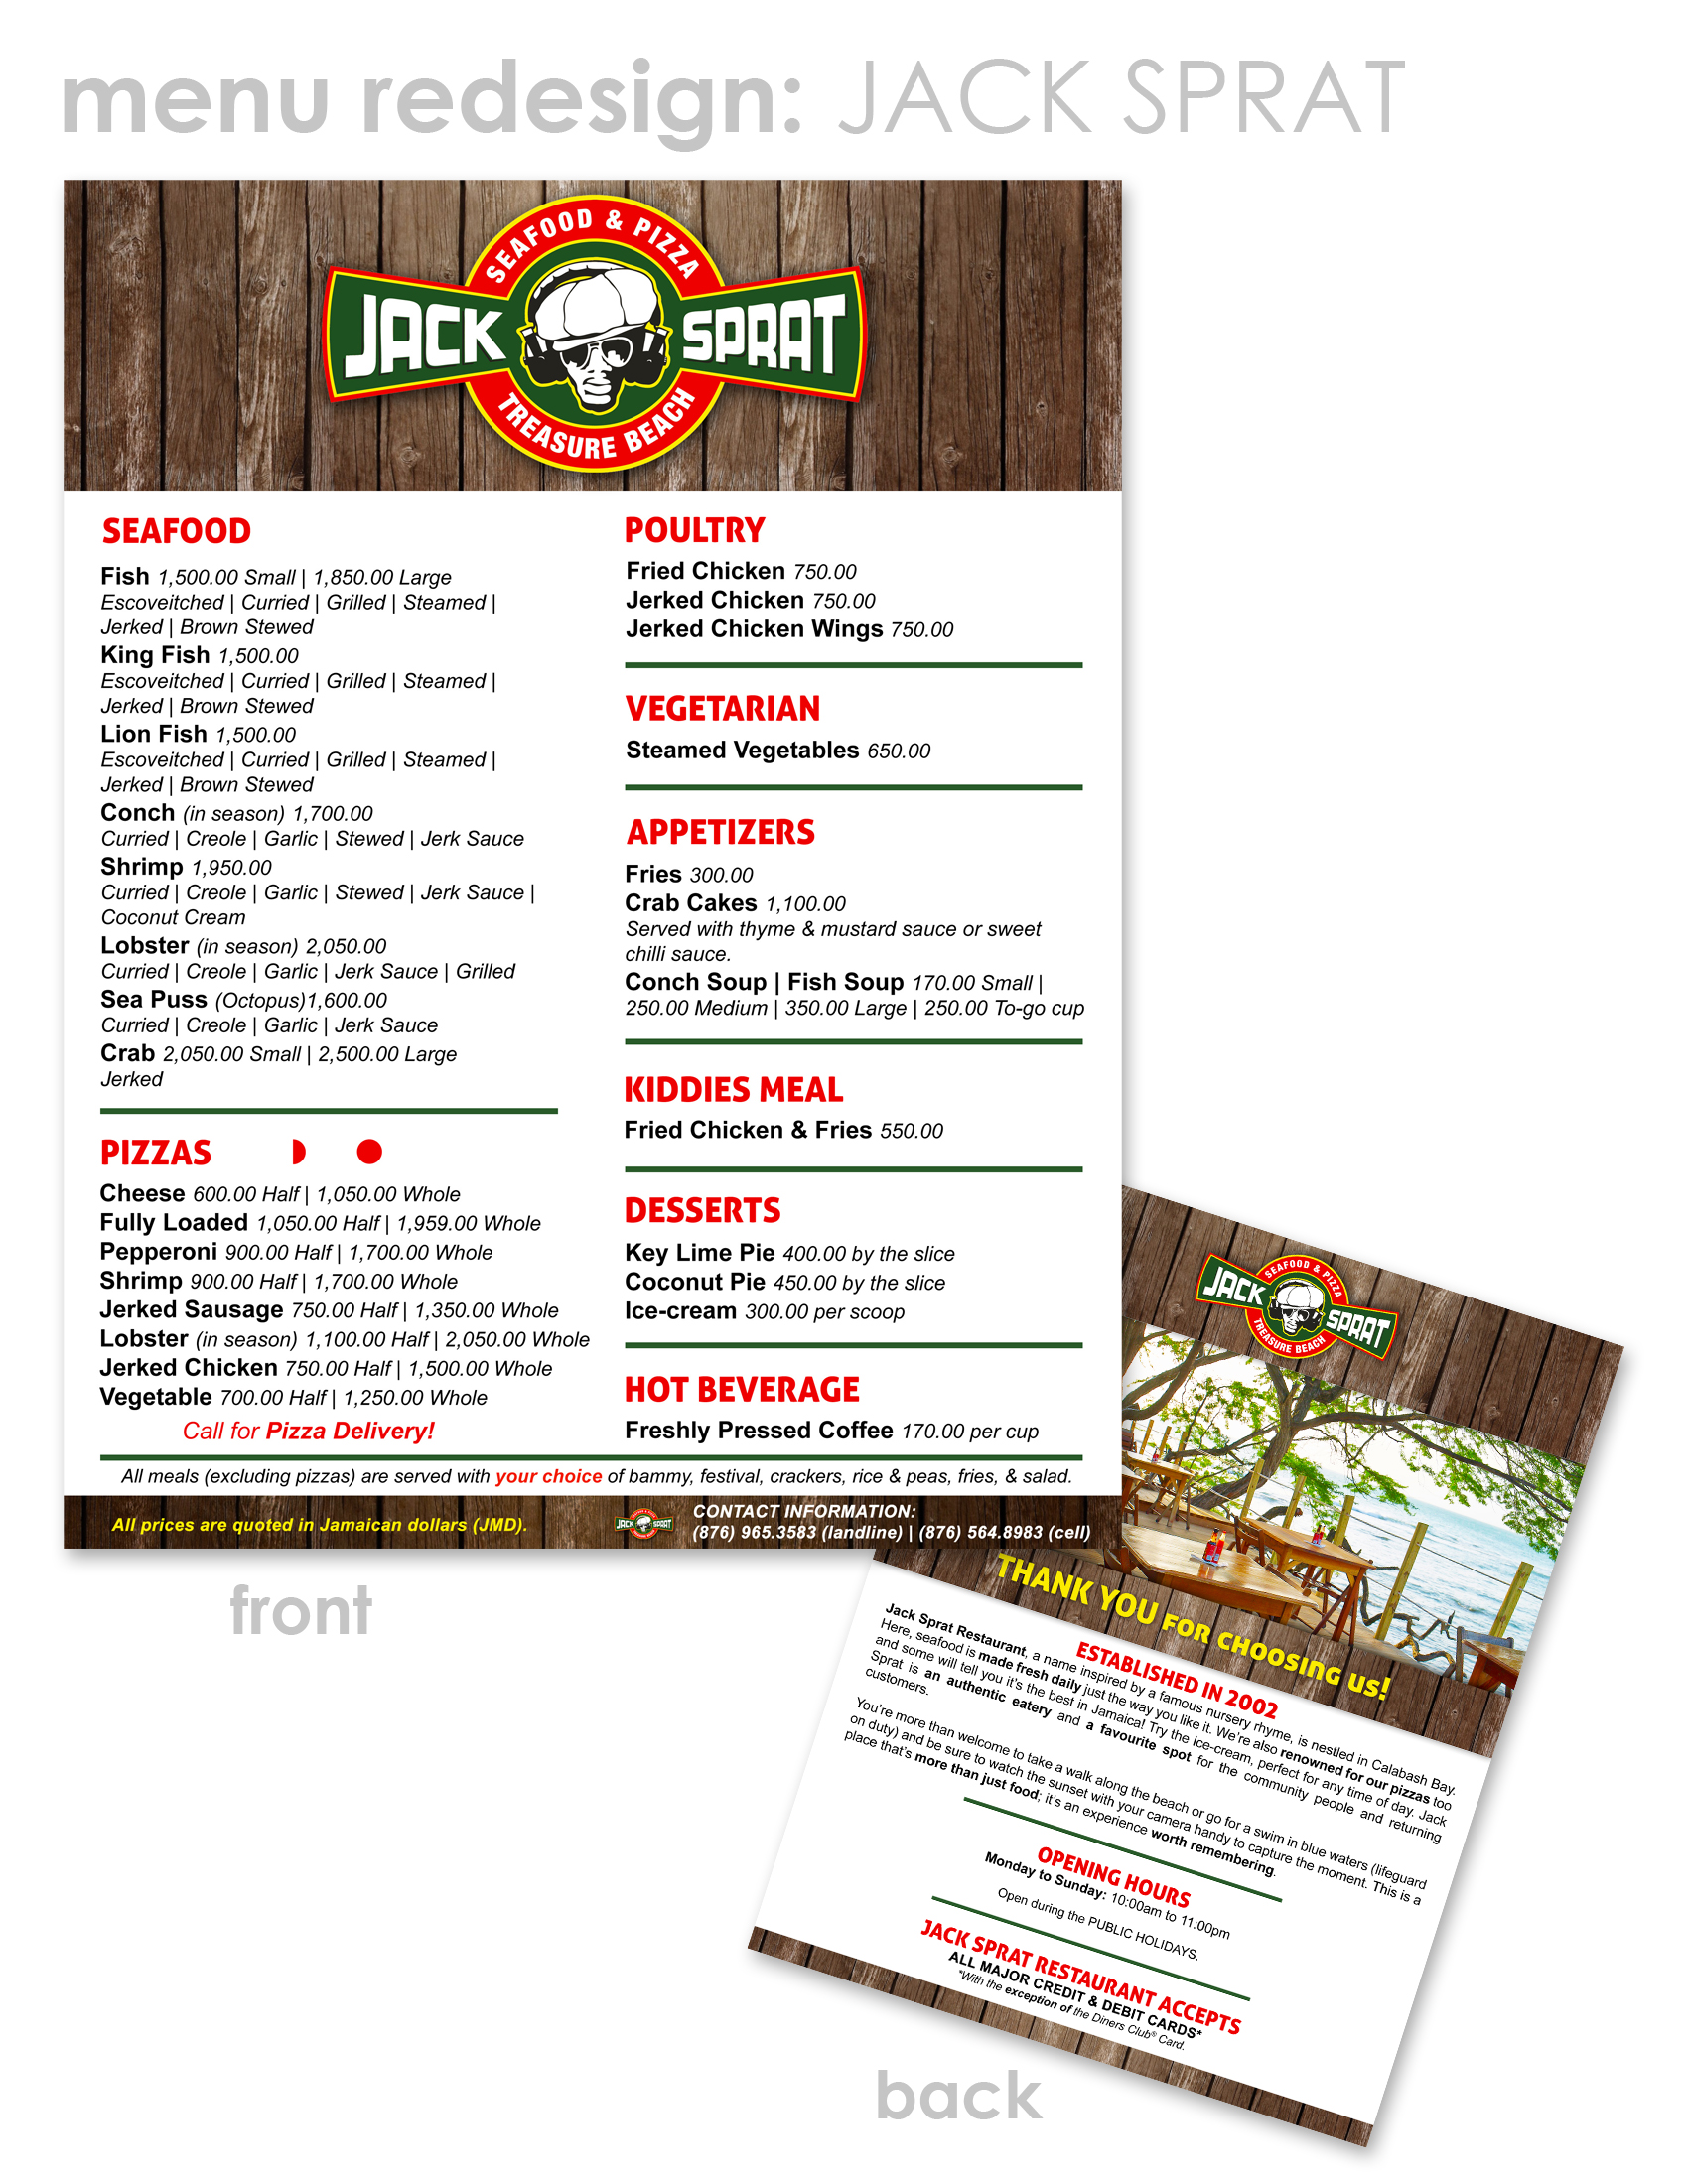 12 Tips To Successfully Design A Restaurant Menu Phresh Ideas Designs